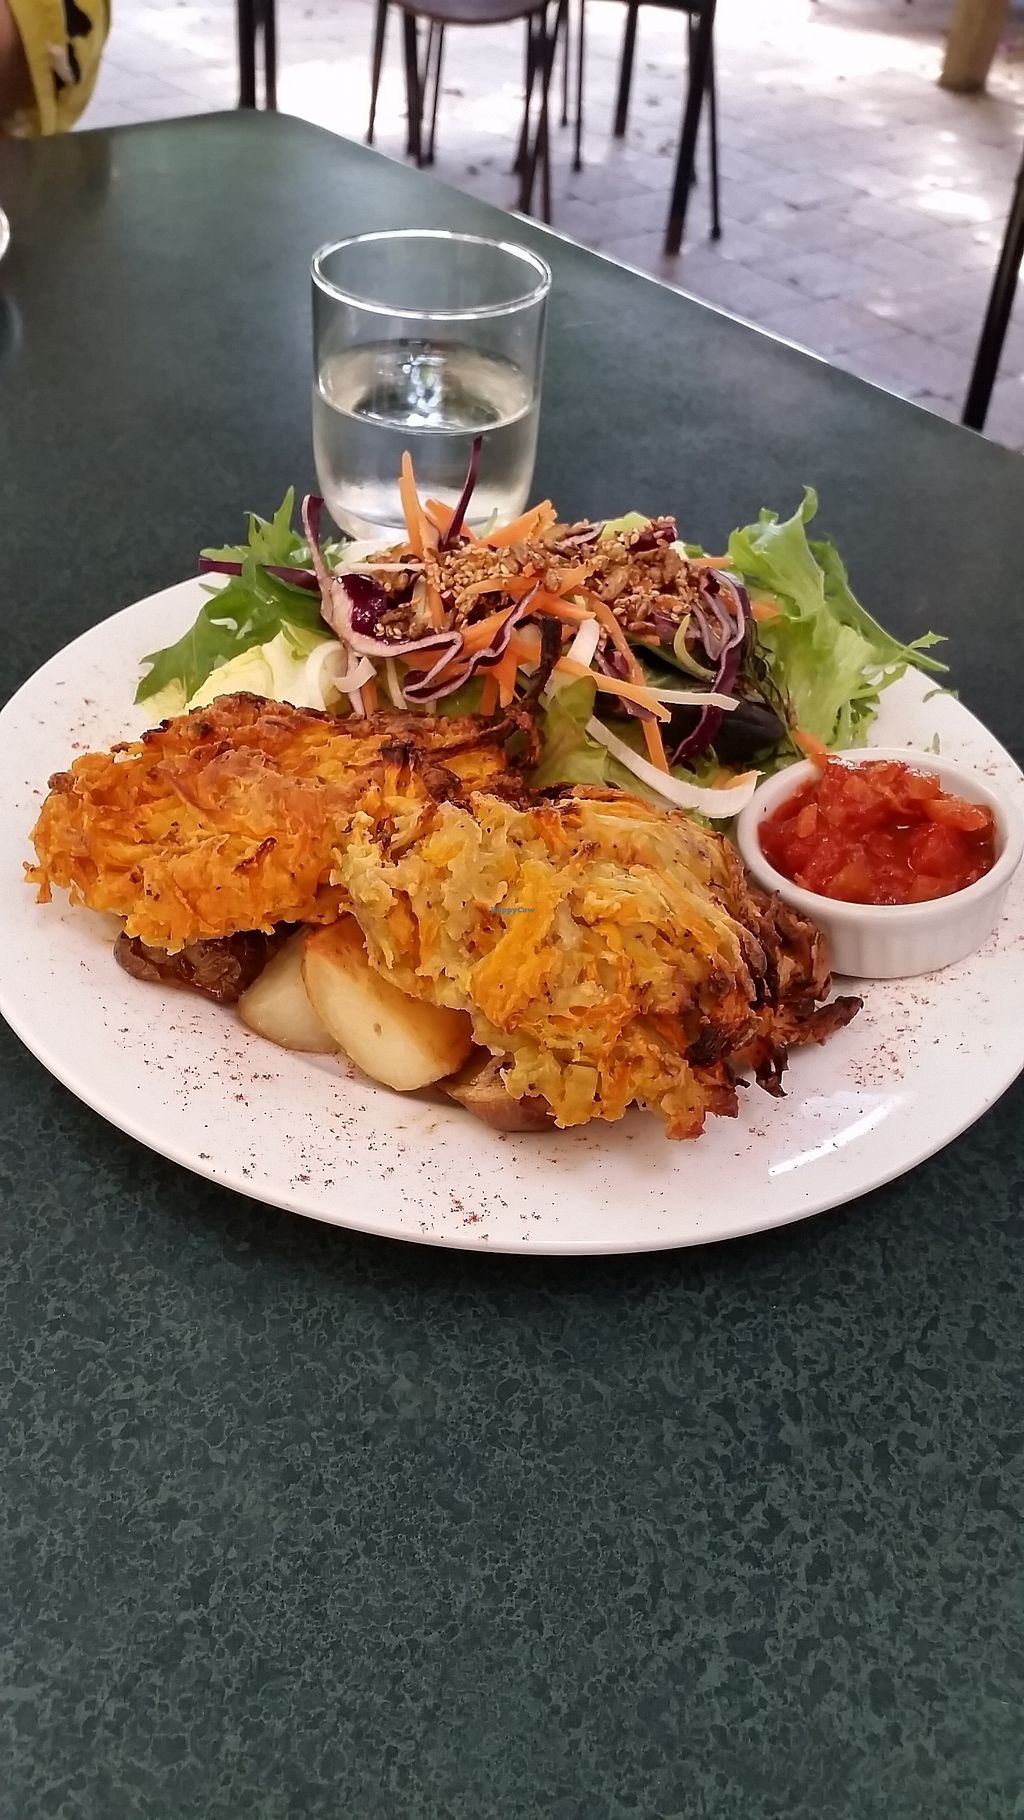 """Photo of The Winemakers Daughter  by <a href=""""/members/profile/AndyTheVWDude"""">AndyTheVWDude</a> <br/>Pumpkin & Kumera fritters - Tasty! <br/> October 28, 2017  - <a href='/contact/abuse/image/100115/319653'>Report</a>"""